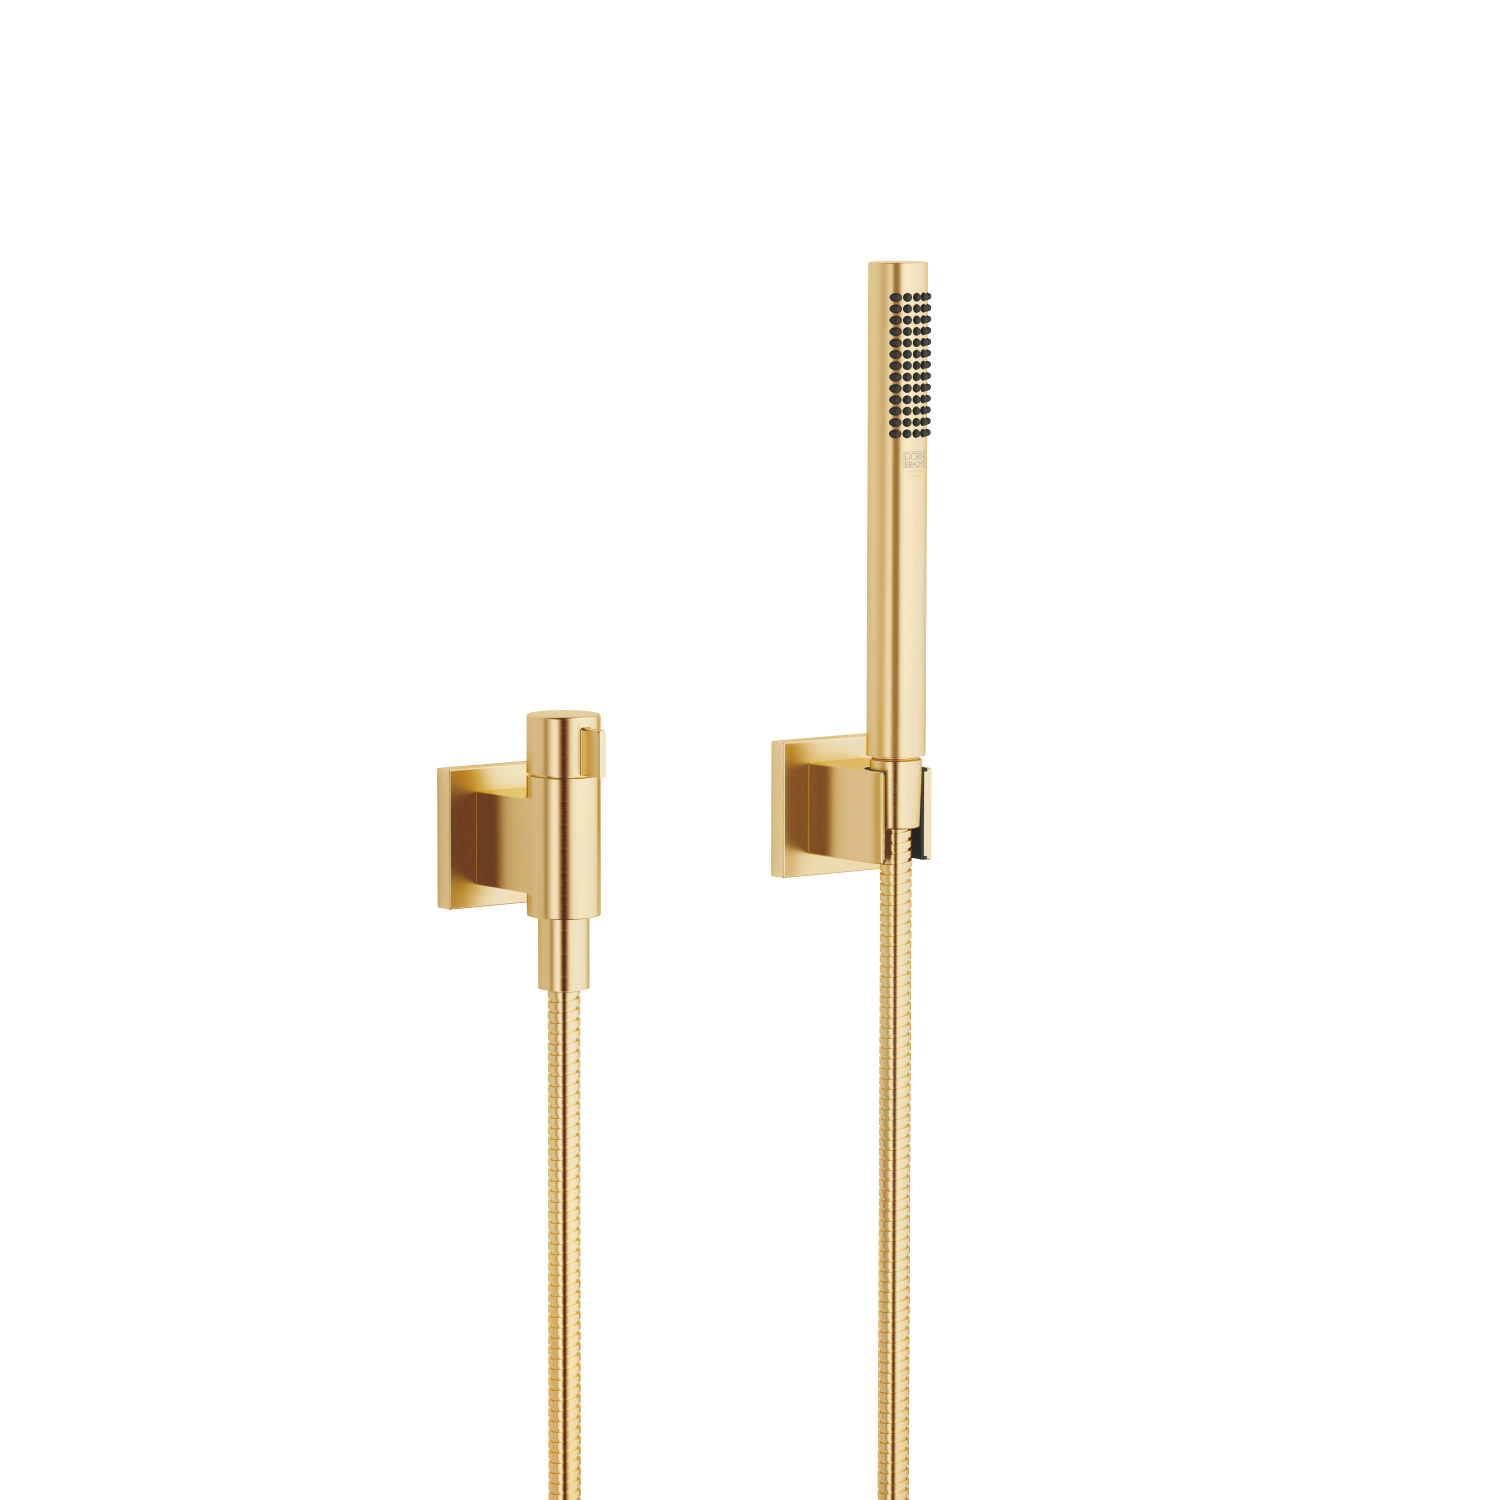 Hand shower set with individual rosettes with volume control - brushed Durabrass